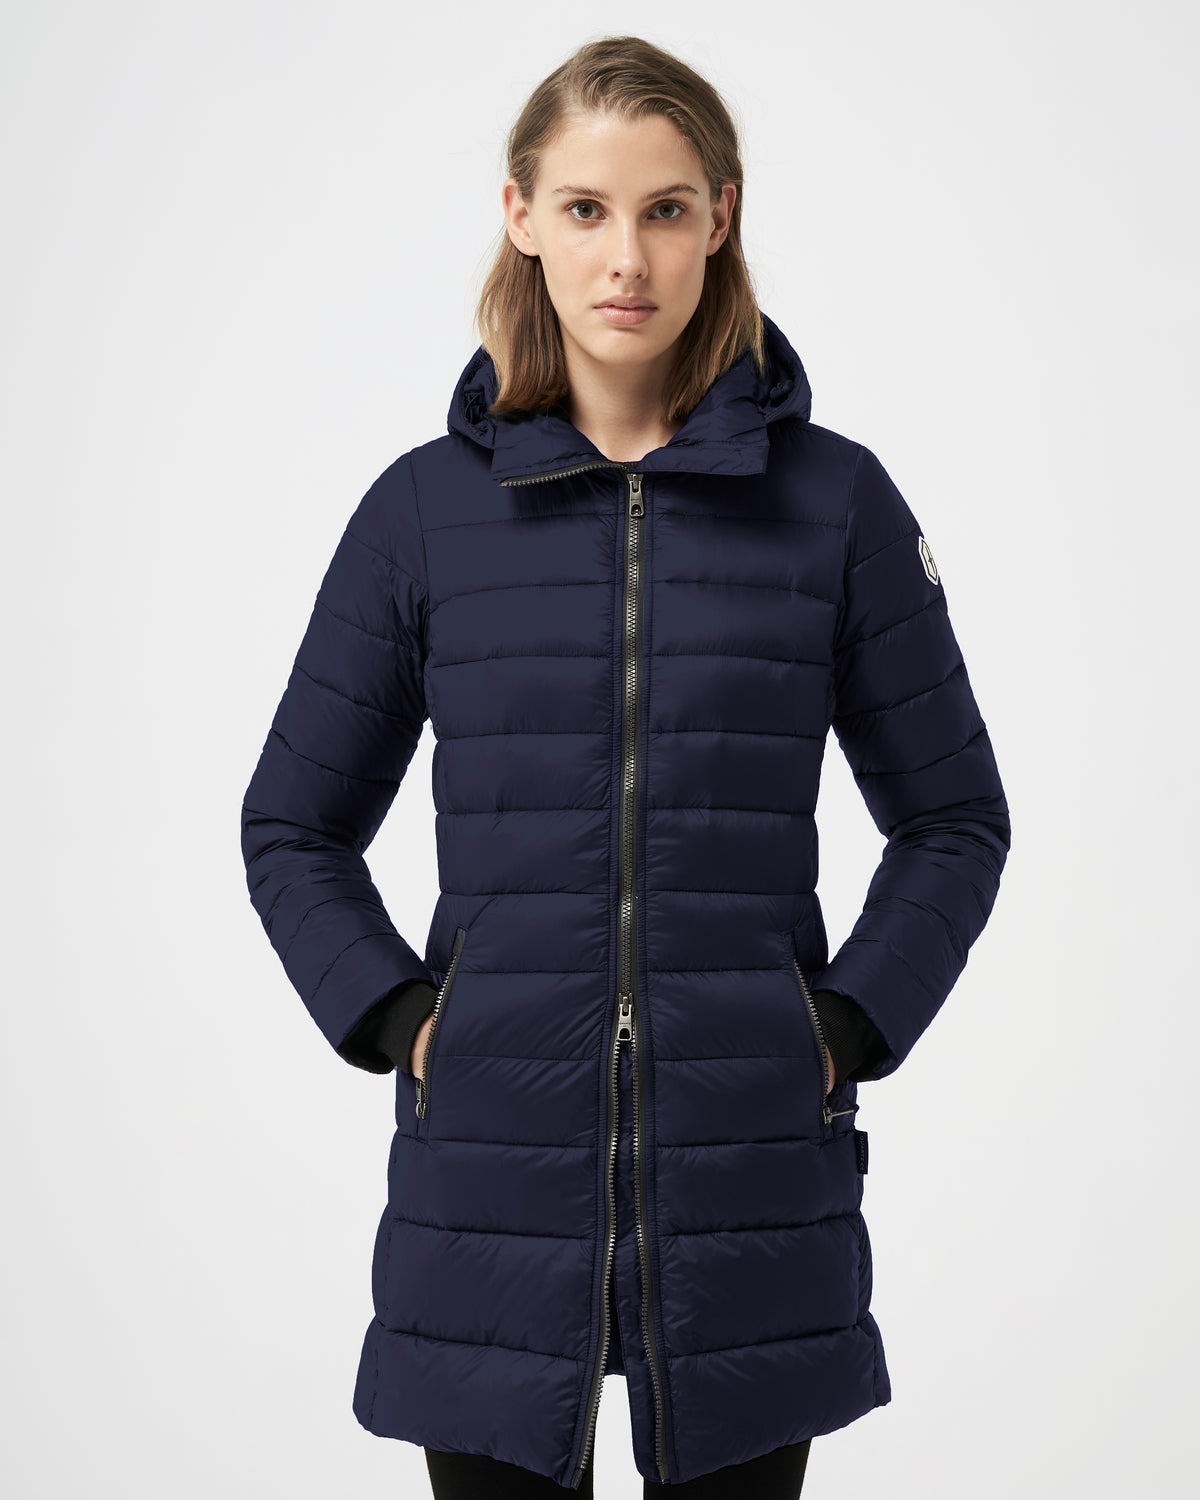 Quartz Co. - Canadian Made Winter Jackets | Lausanne | Manteau Transition | Moonlight Ocean